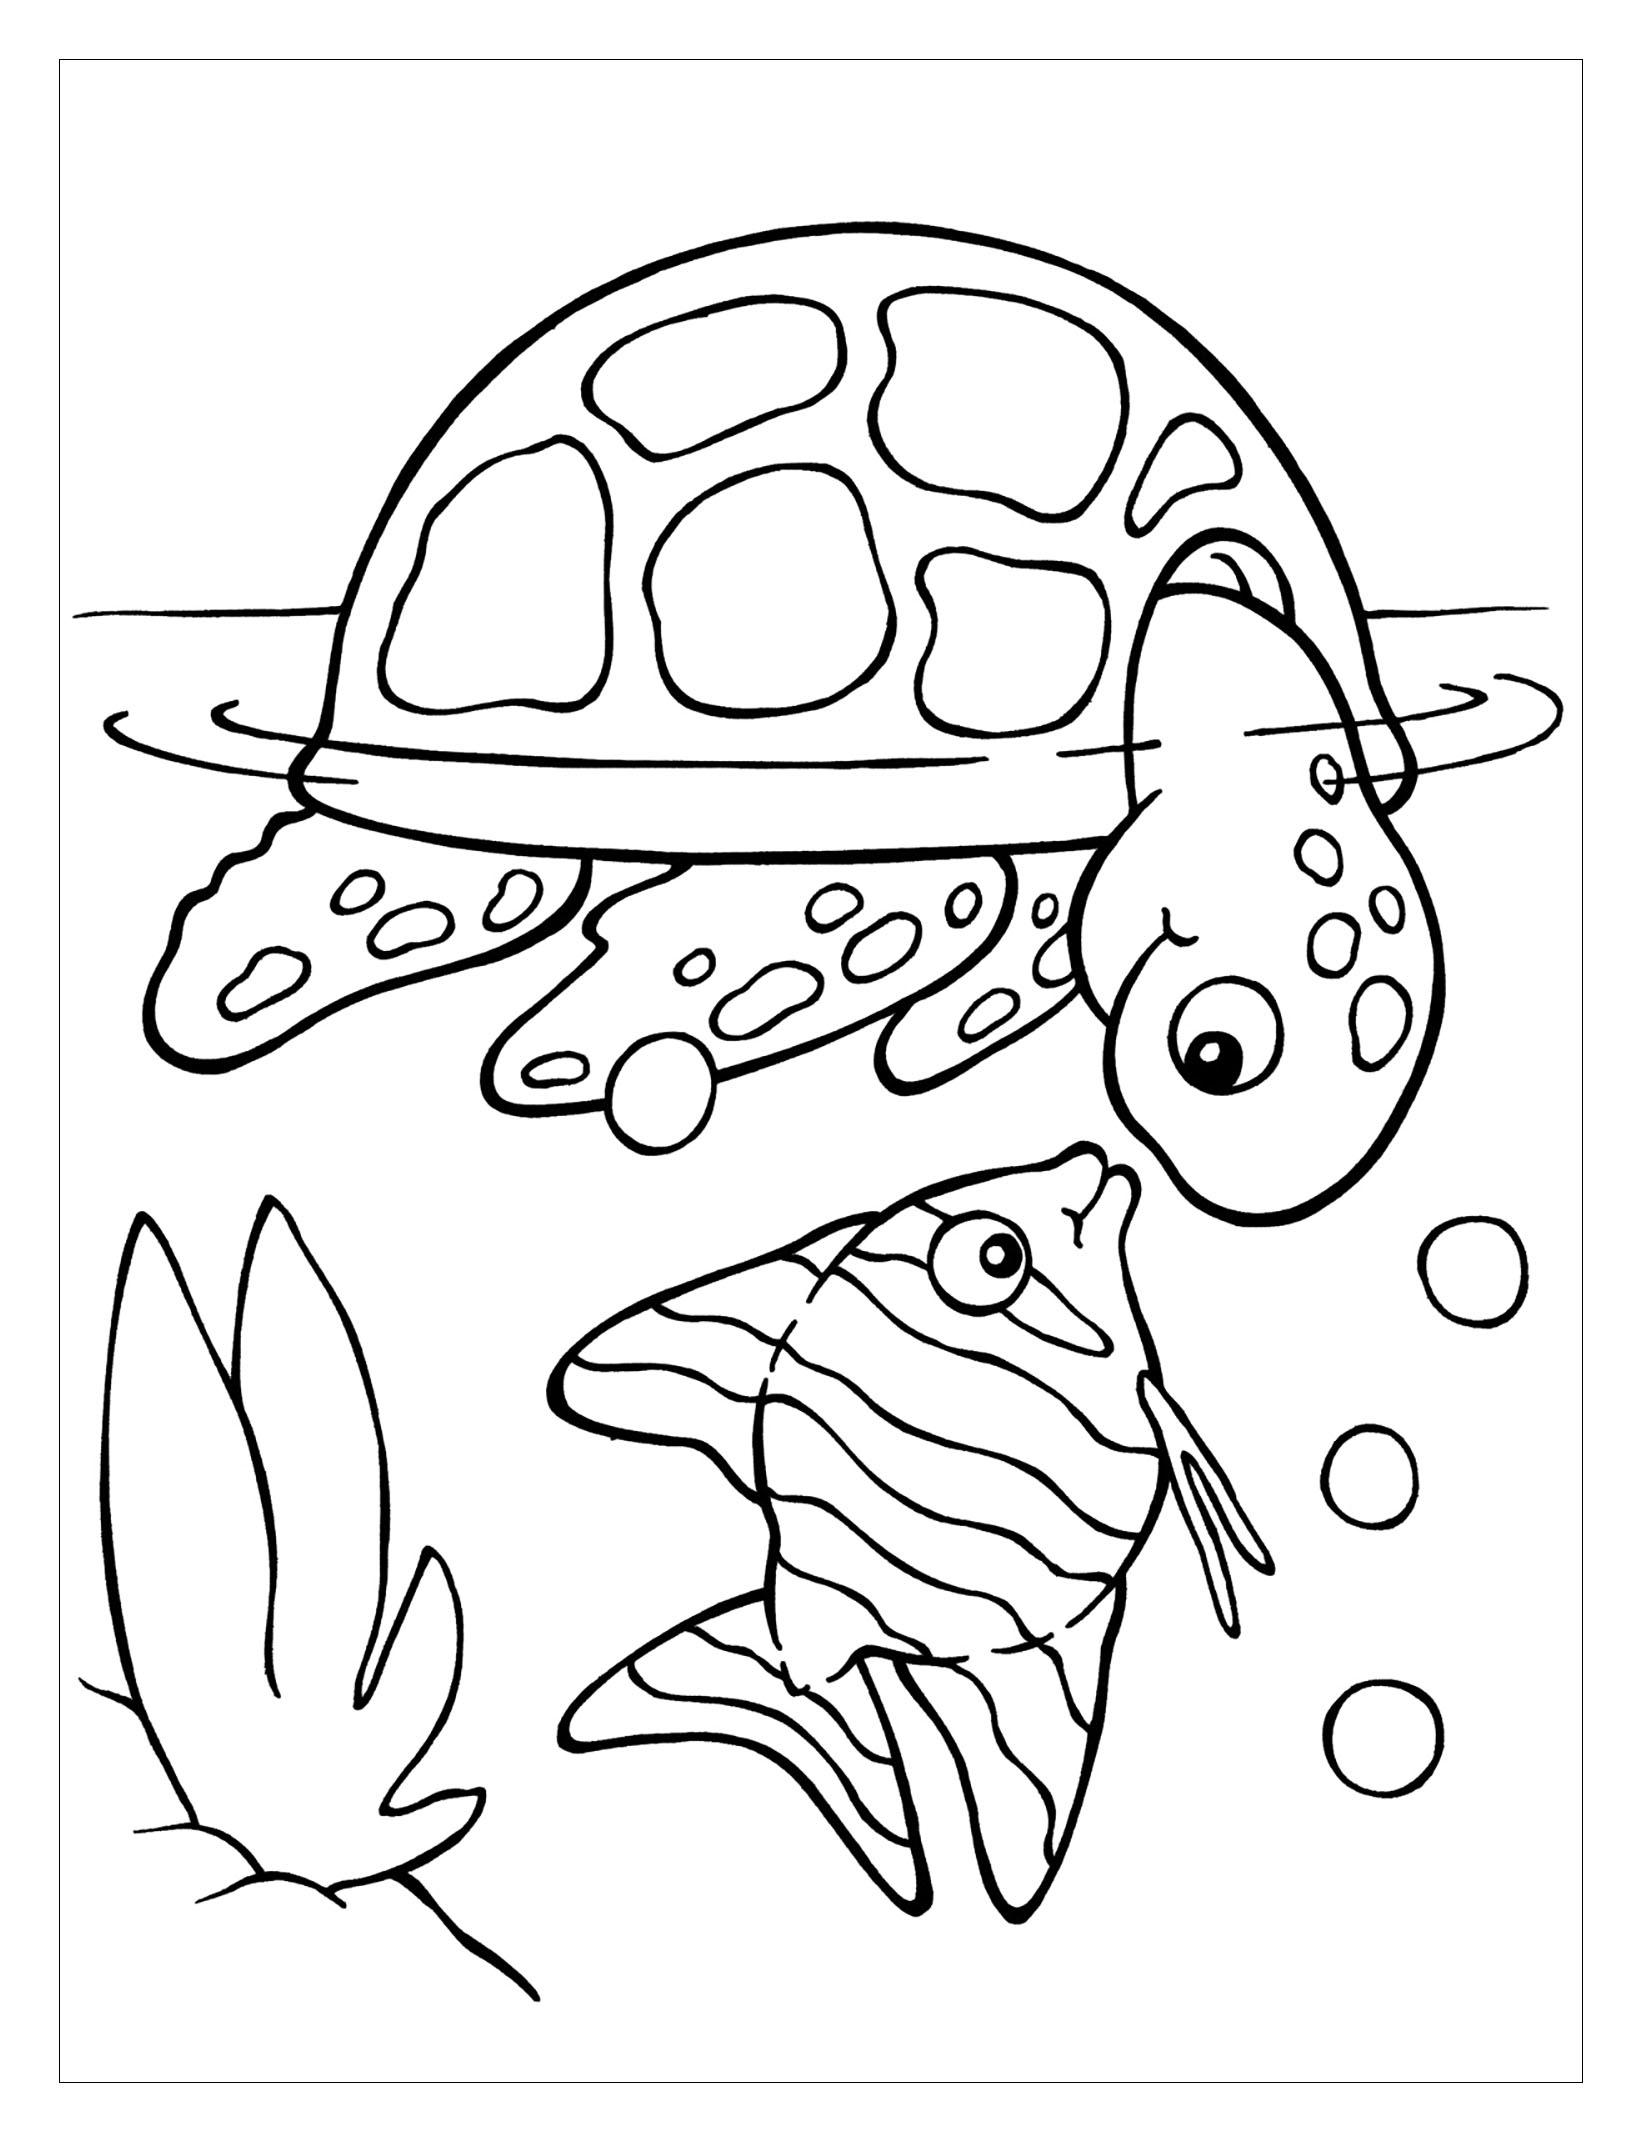 turtle pictures to color cute baby turtle coloring pages bestappsforkidscom color pictures turtle to